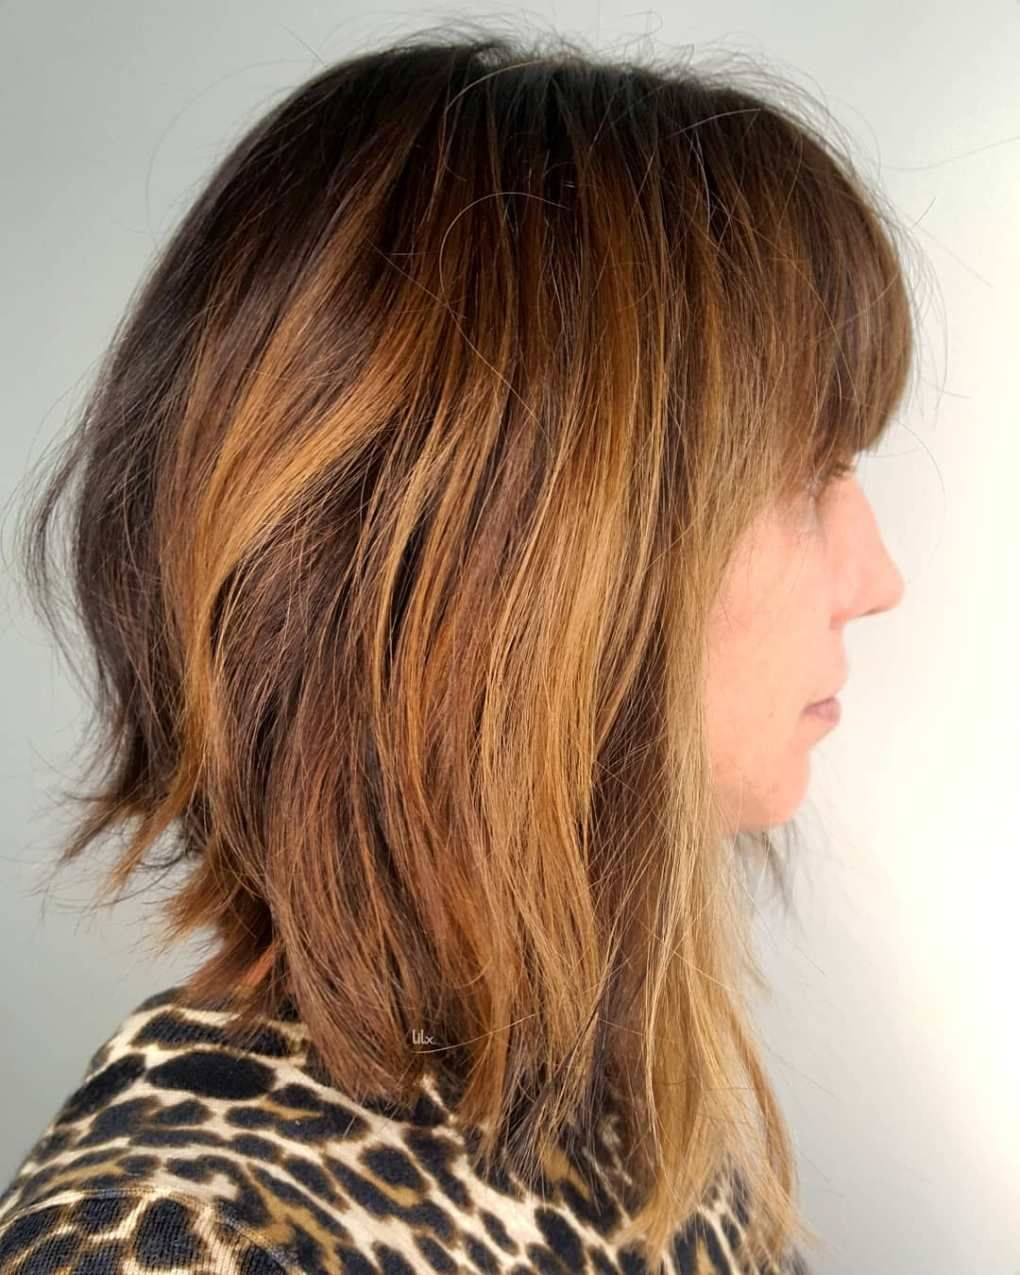 50 Best Bob Styles For 2020 Fab Bob Haircuts And Hairstyles For Women Hair Adviser In 2020 Bob Hairstyles Best Bob Haircuts Bobs Haircuts